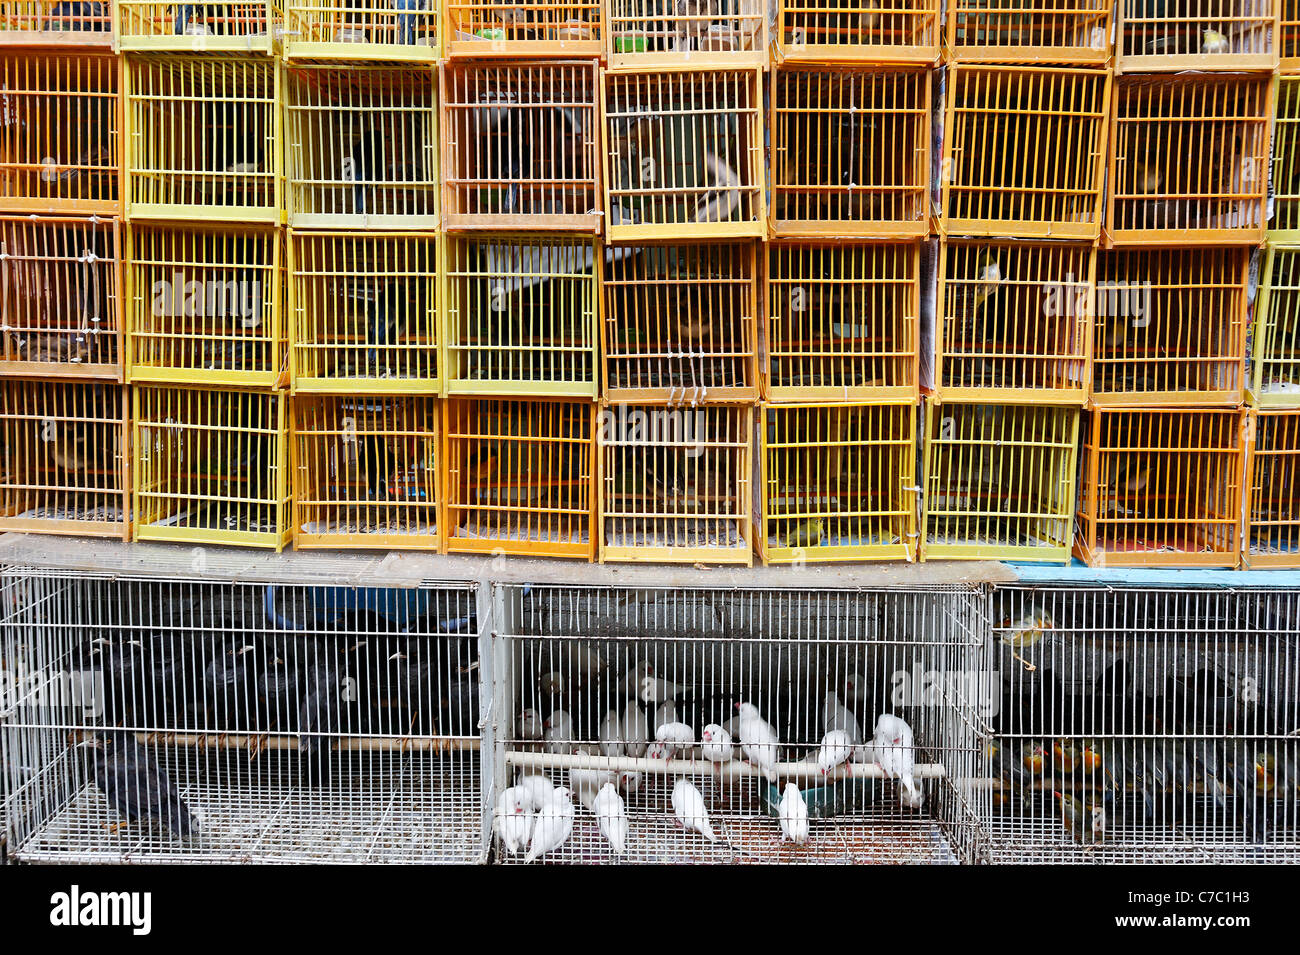 Songbirds in bird cages for sale in Yuen Po Street Bird Garden, Kowloon, Hong Kong SAR, People's Republic of - Stock Image